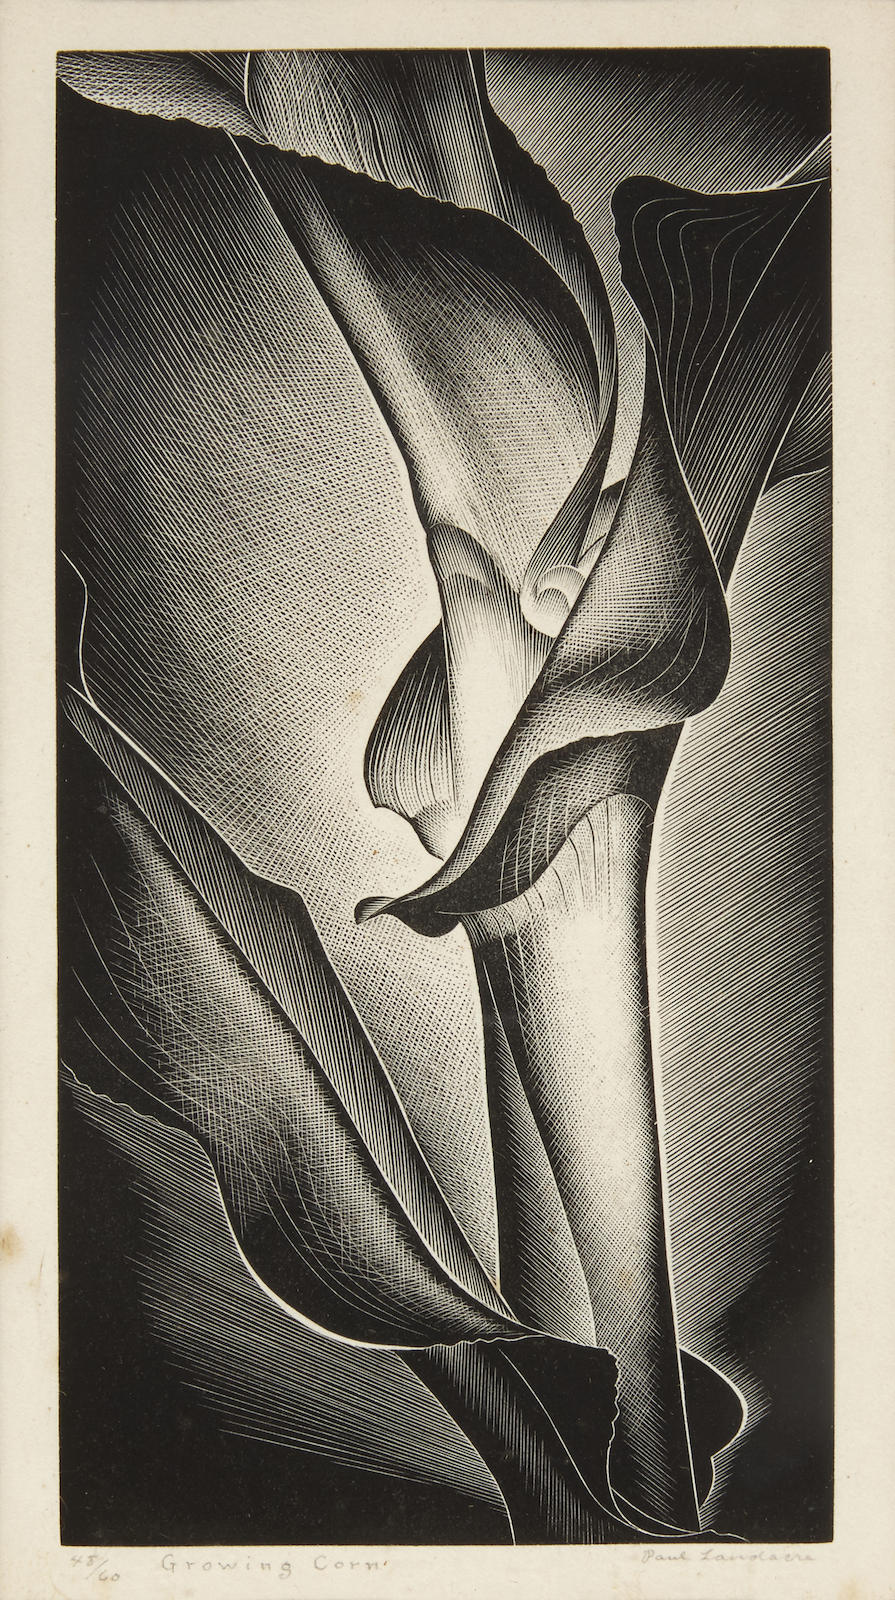 Paul Landacre-Growing Corn-1938